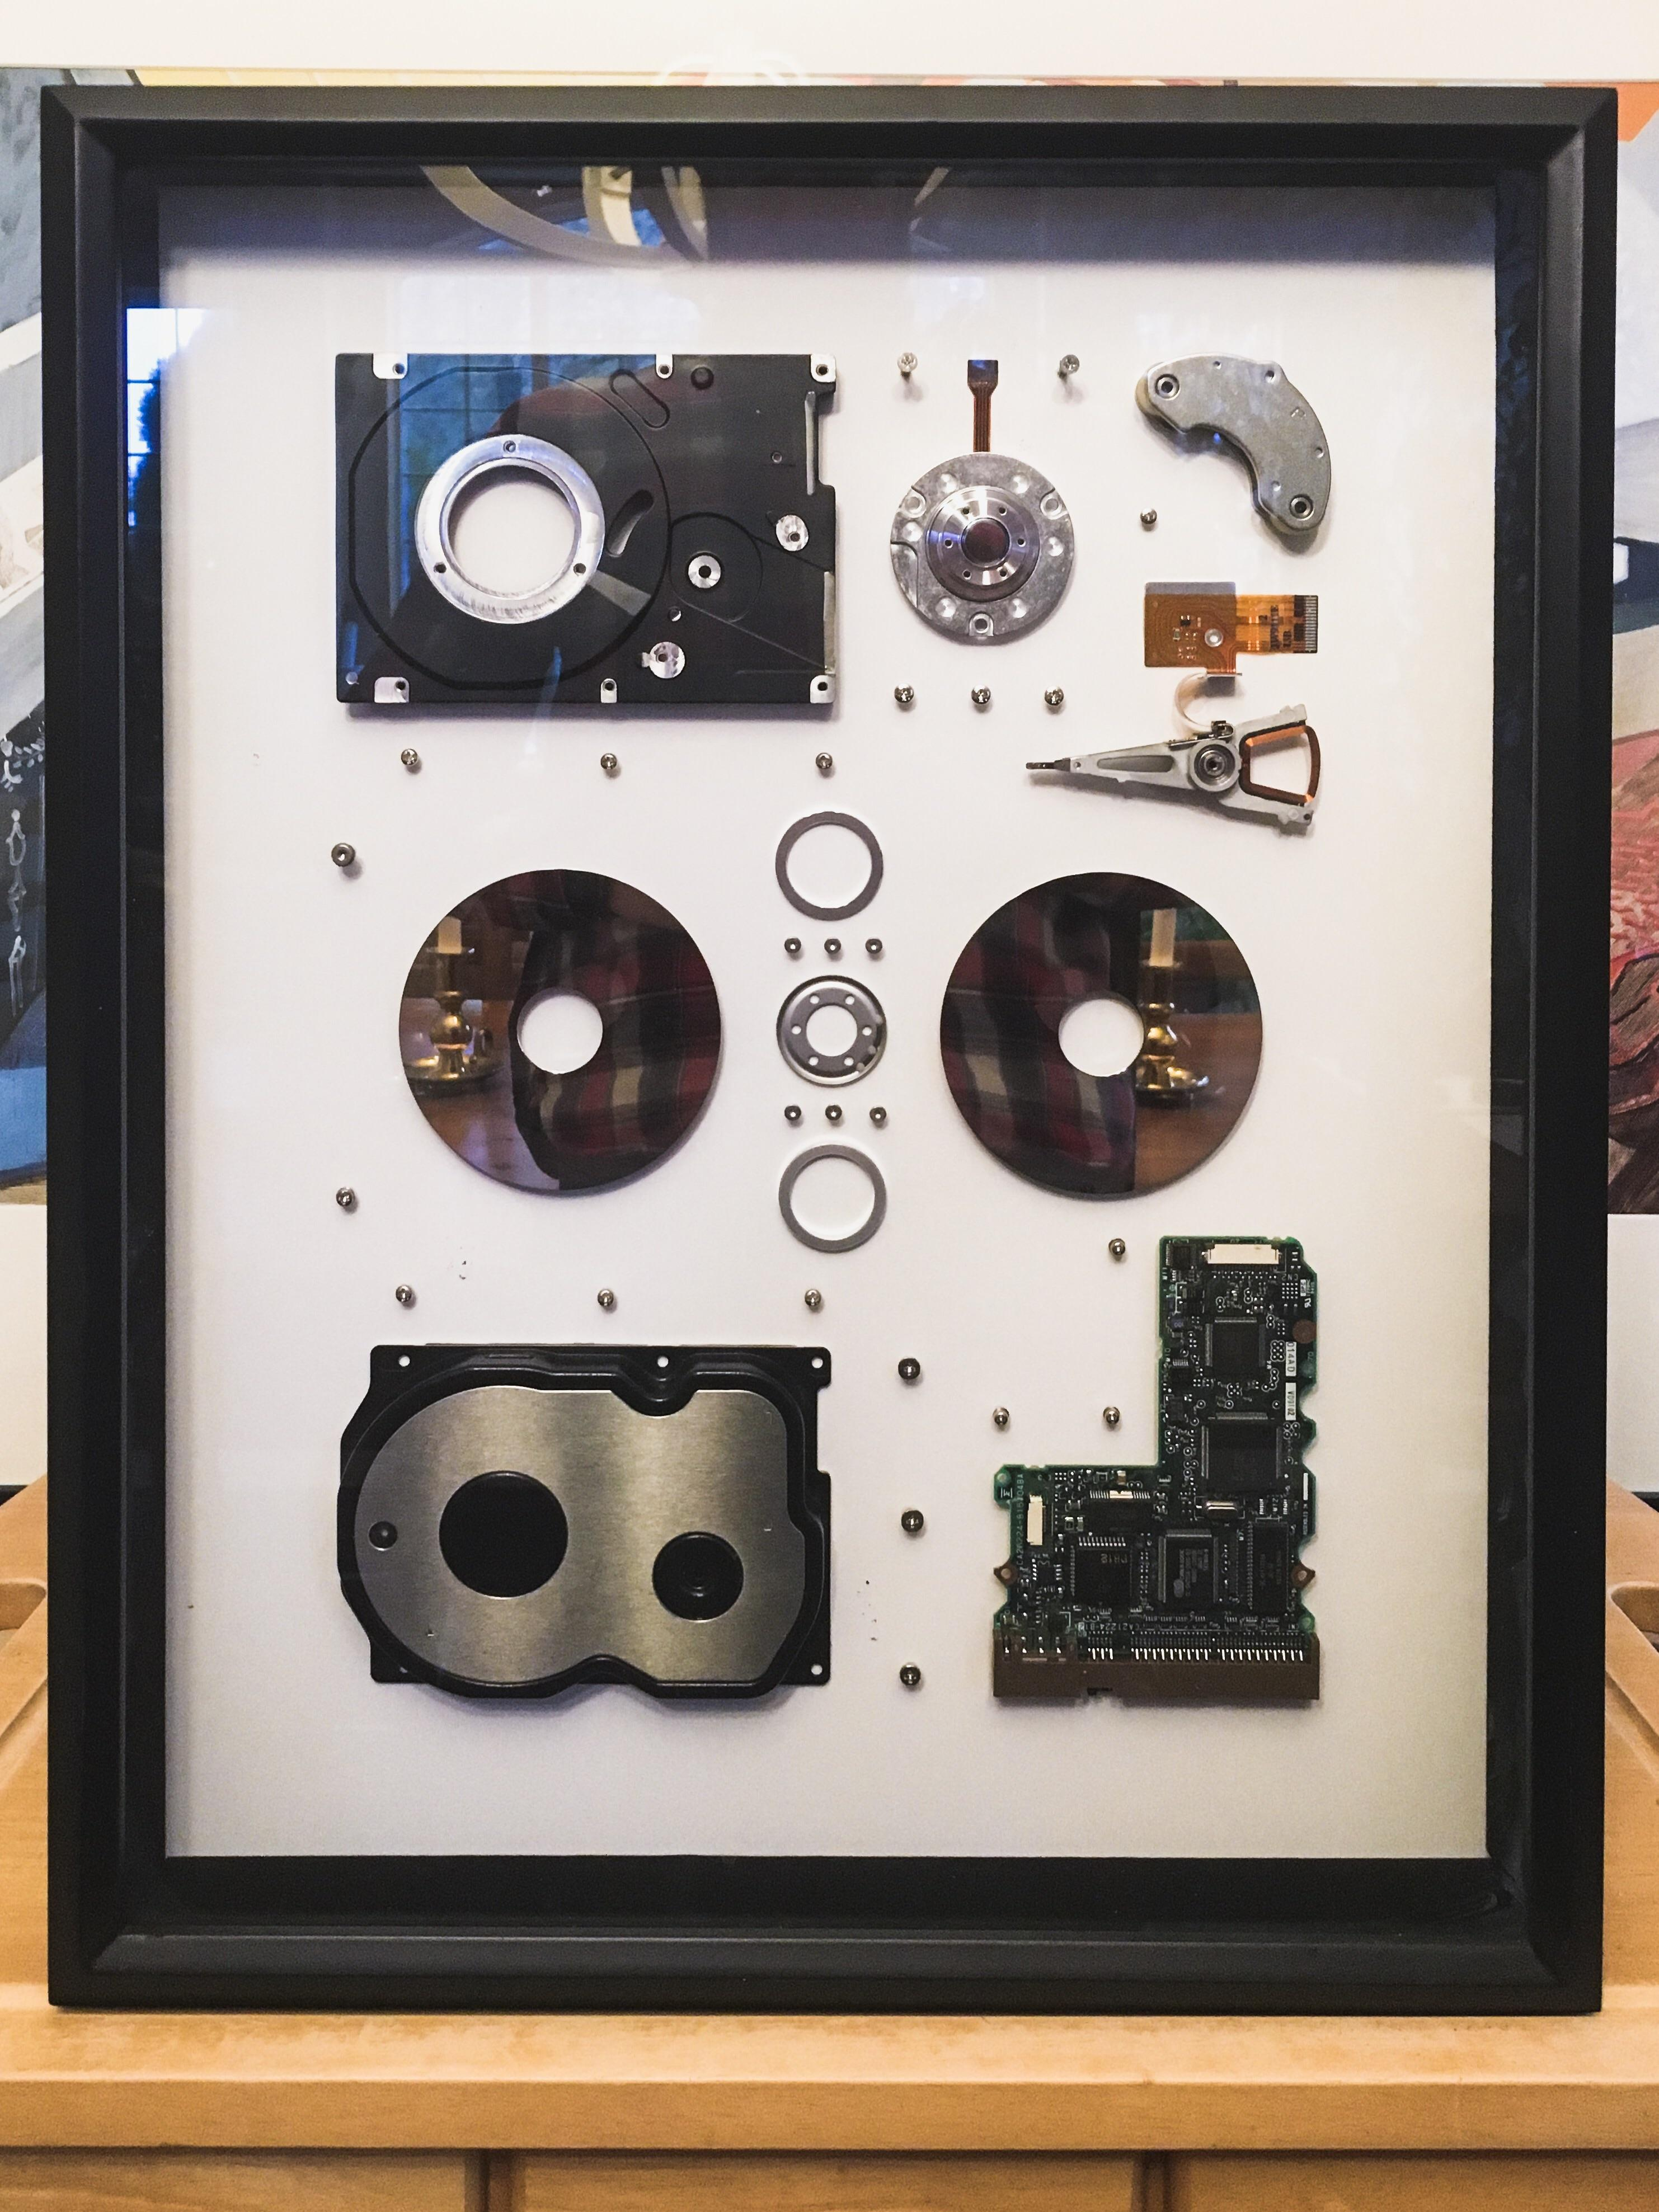 Knolled HDD